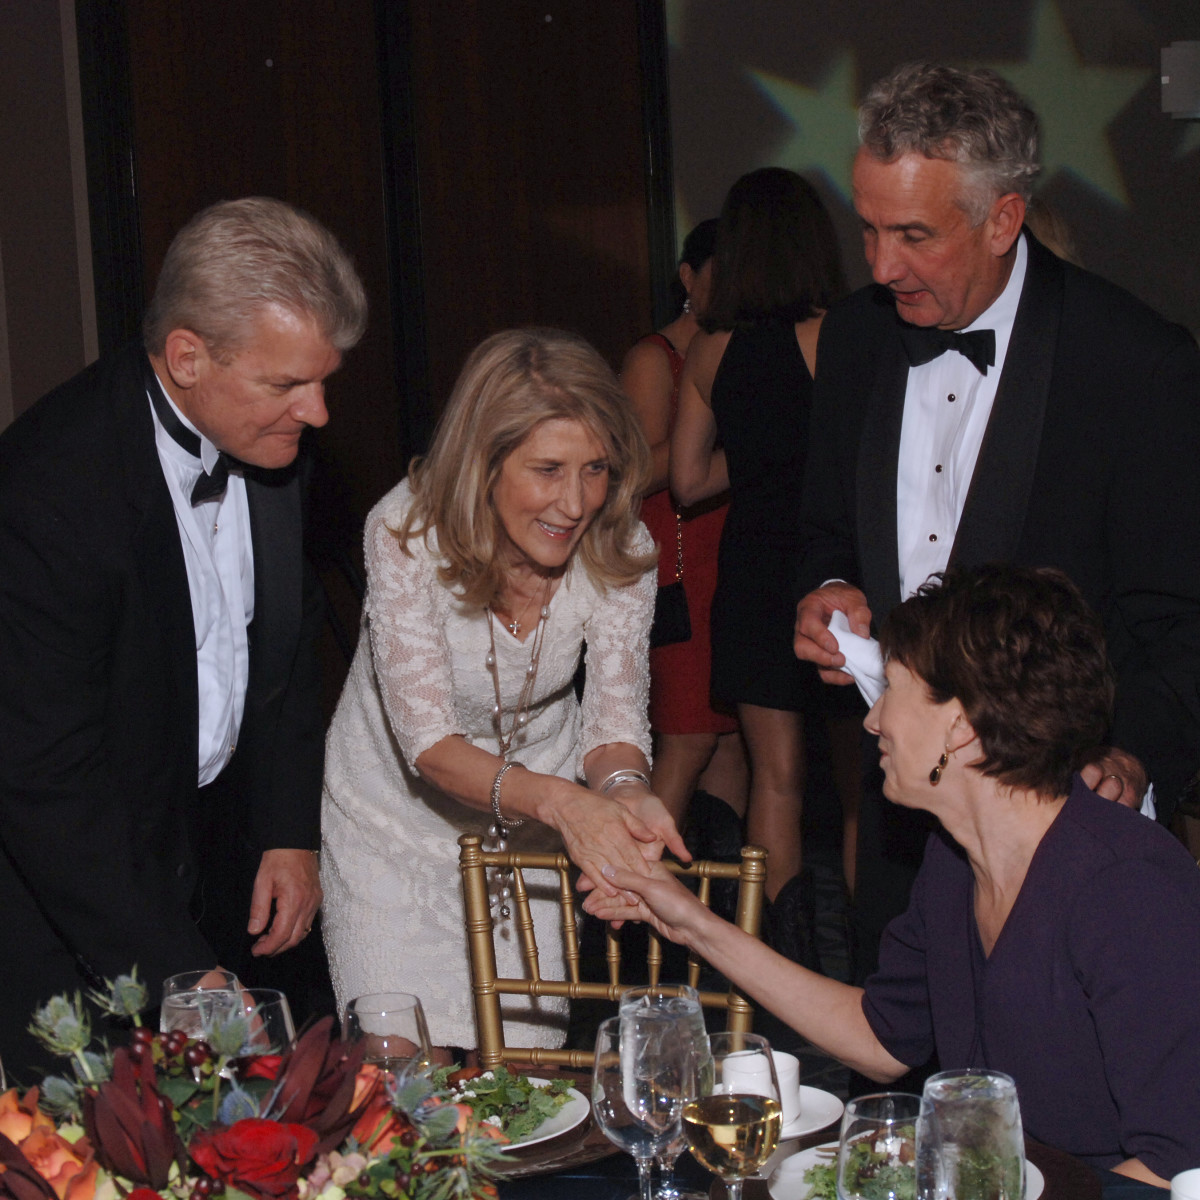 UH Law gala, April 2016, Brian Molin, Laura Trenaman, Tom Godbold, Debbie Godbold